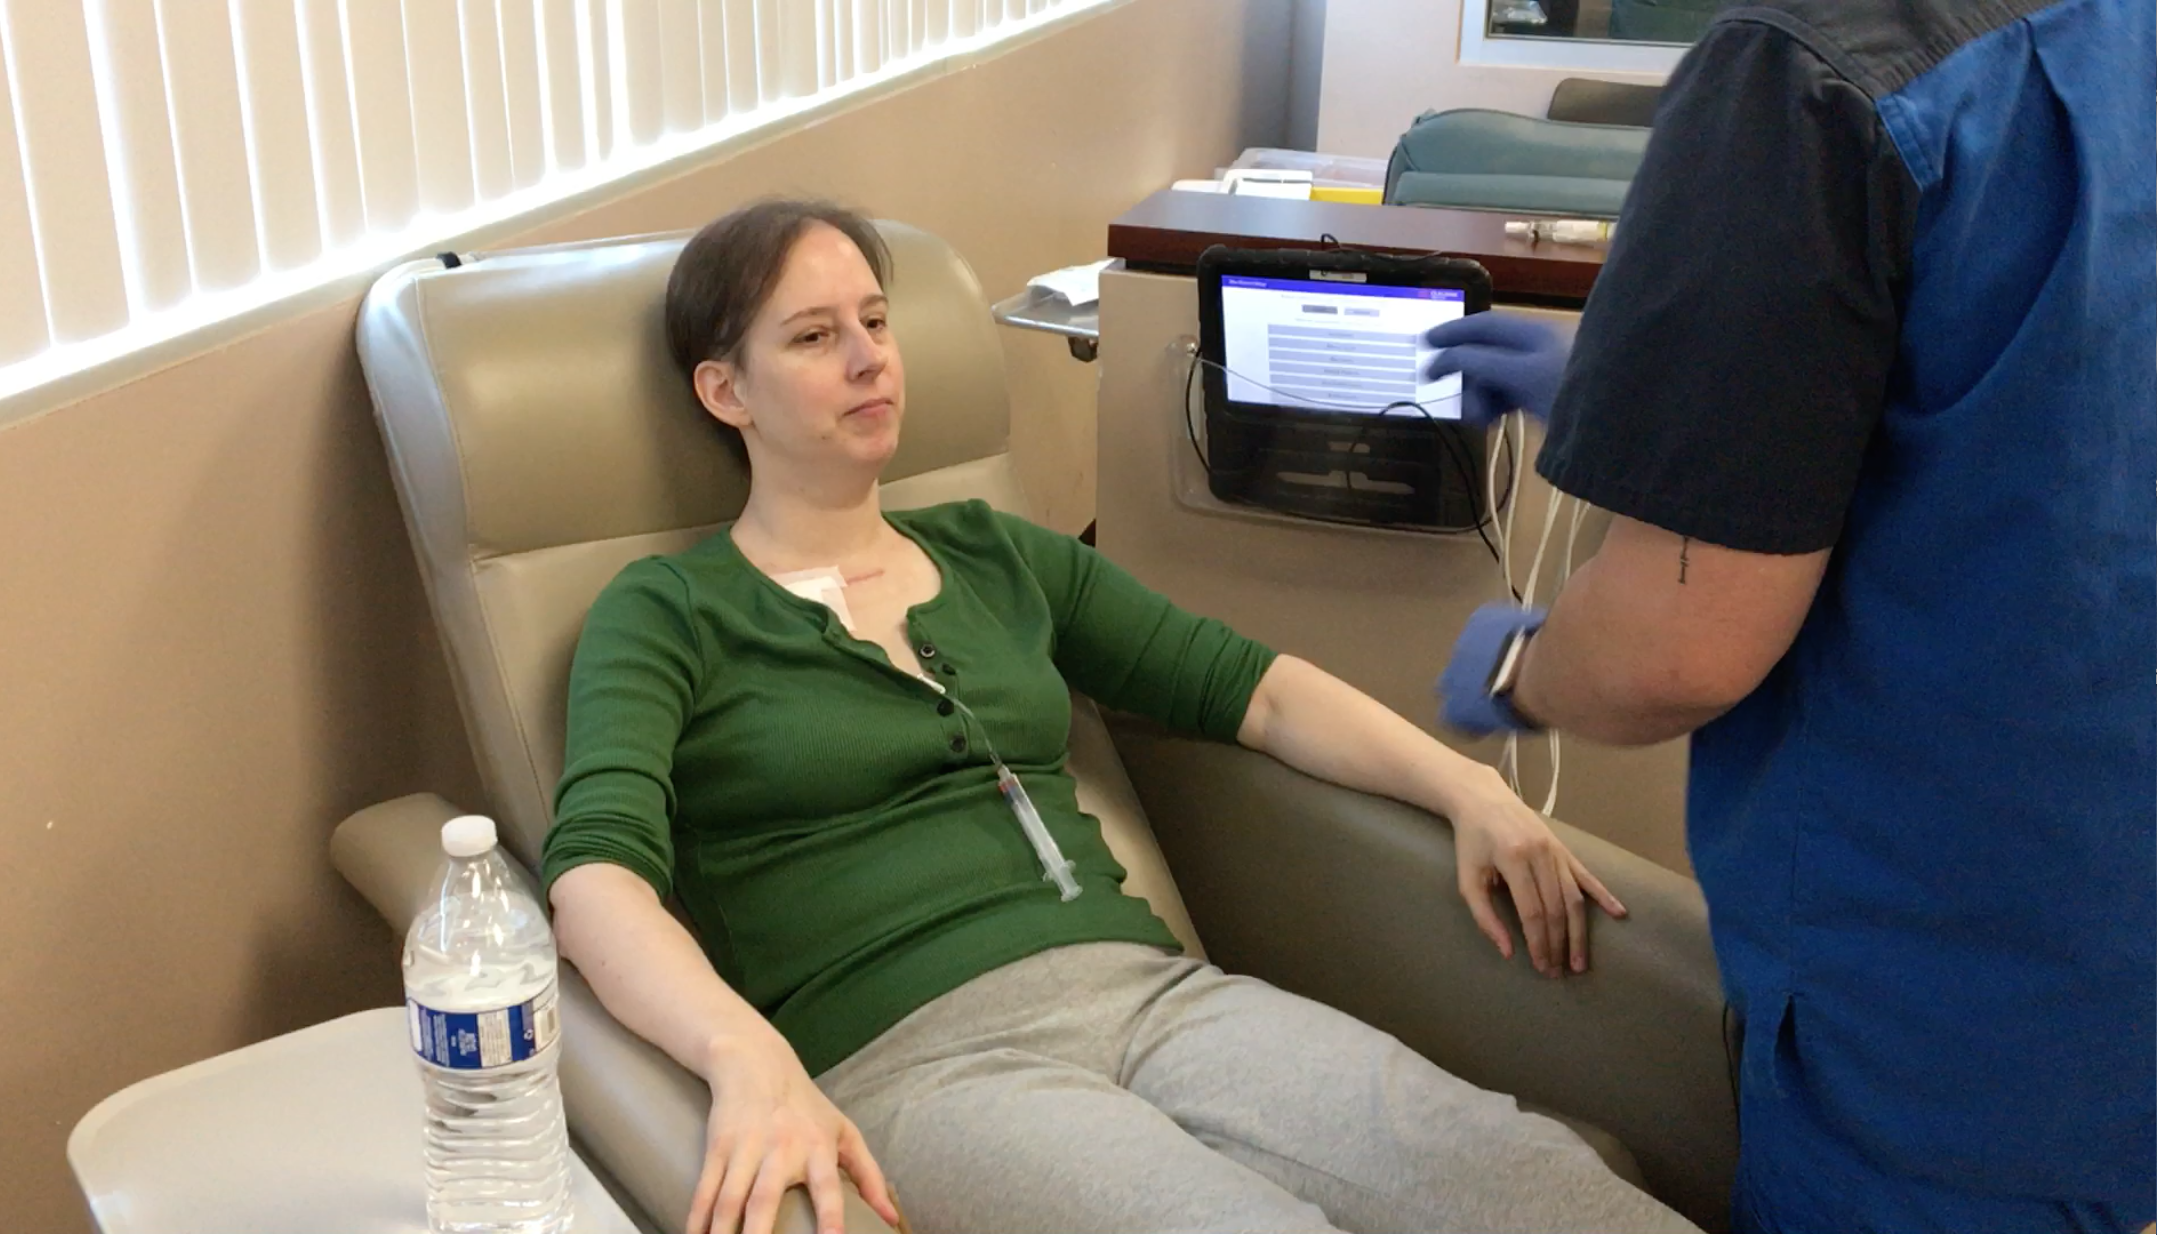 Laura Packard receives chemotherapy treatment in August 2017. (Courtesy of Laura Packard)